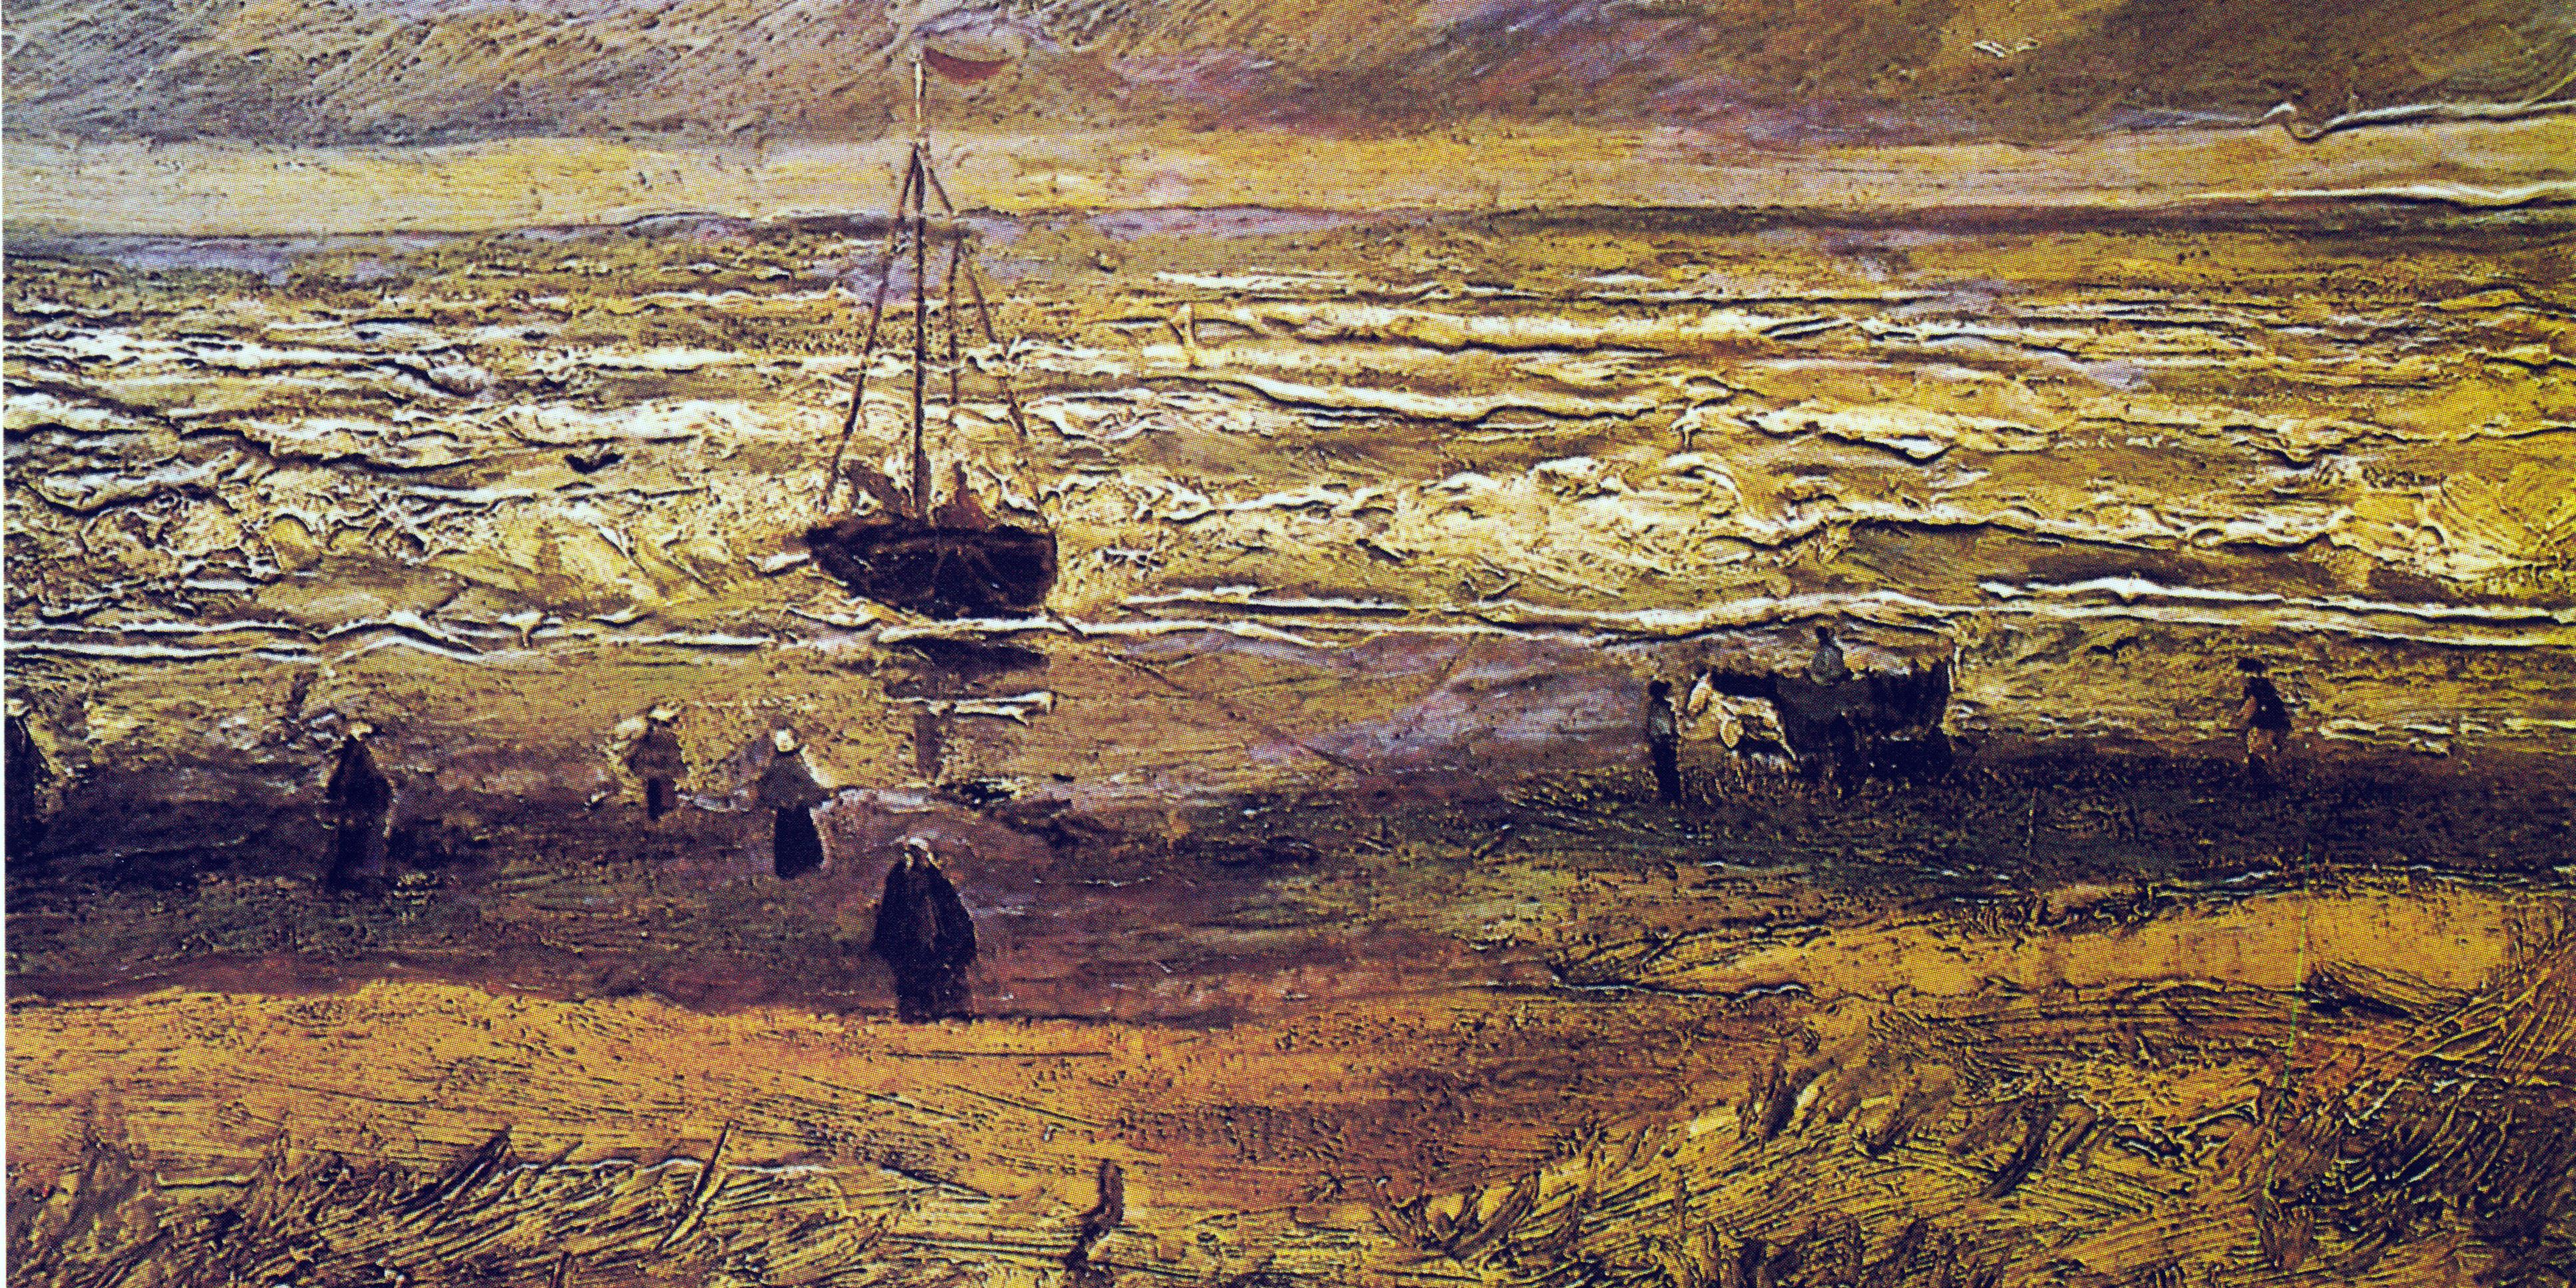 Forr�s: Wikipedia/Van Gogh Museum